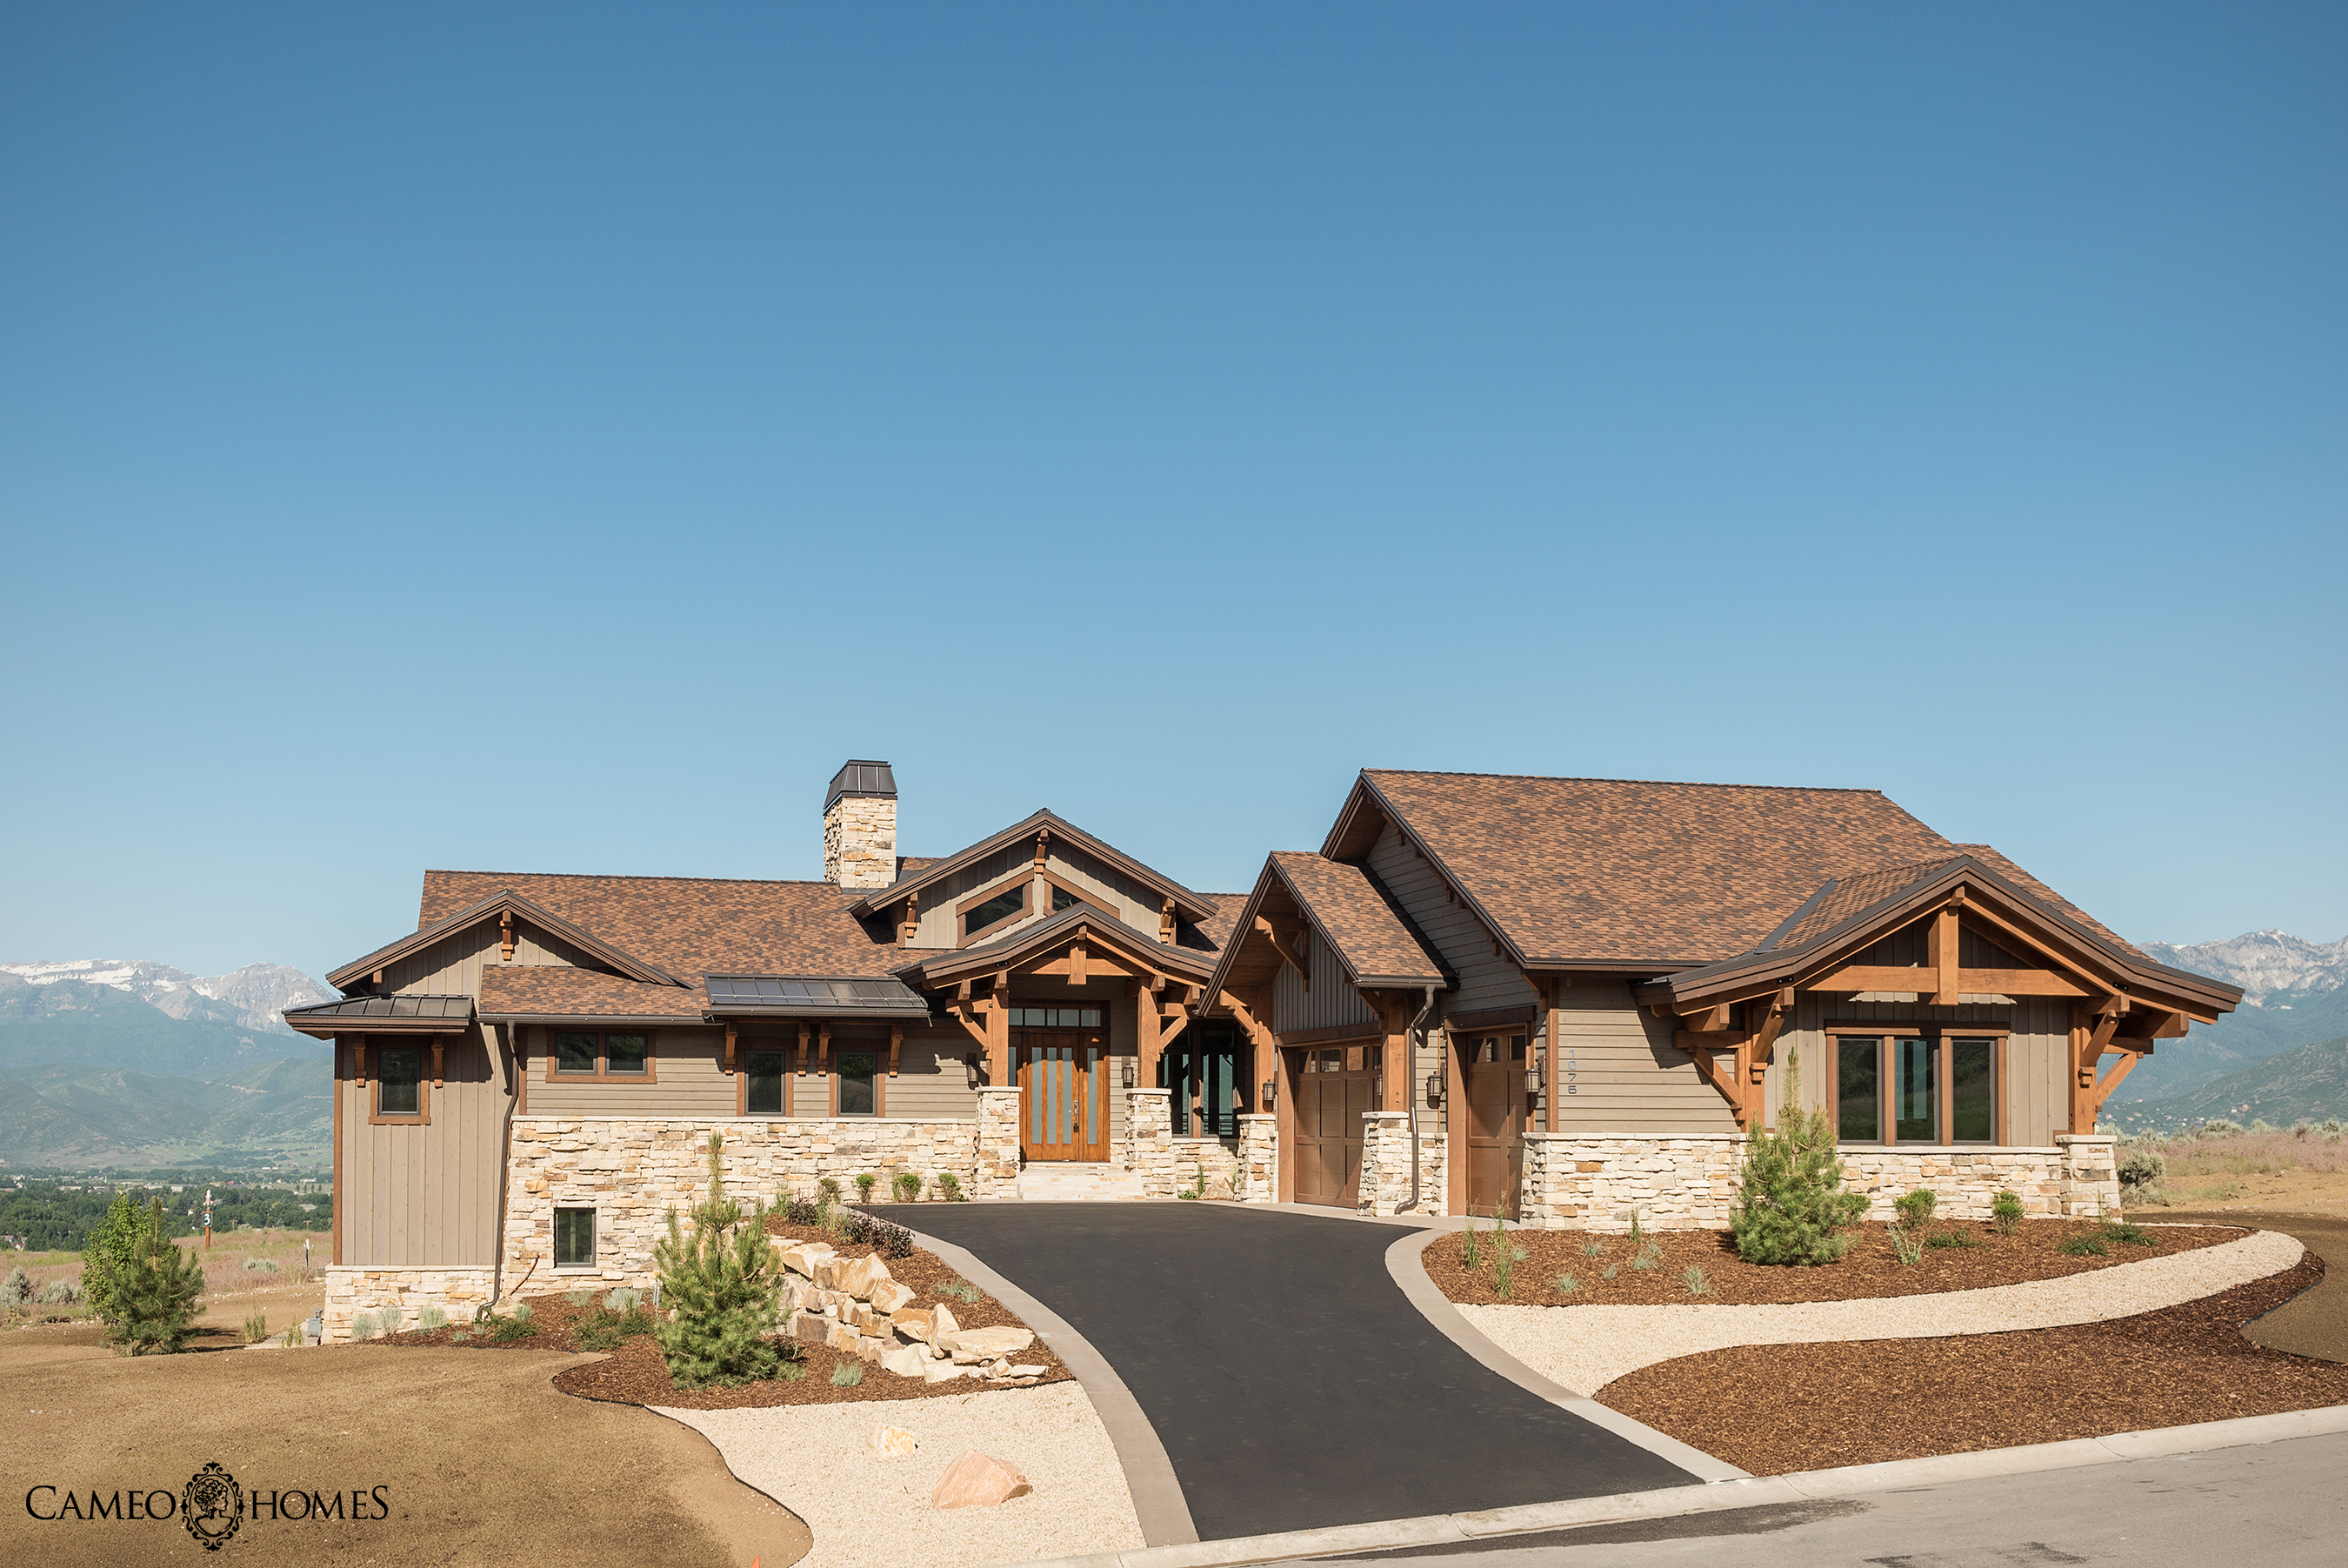 Red ledges luxury home a cameo life for Luxury home developers